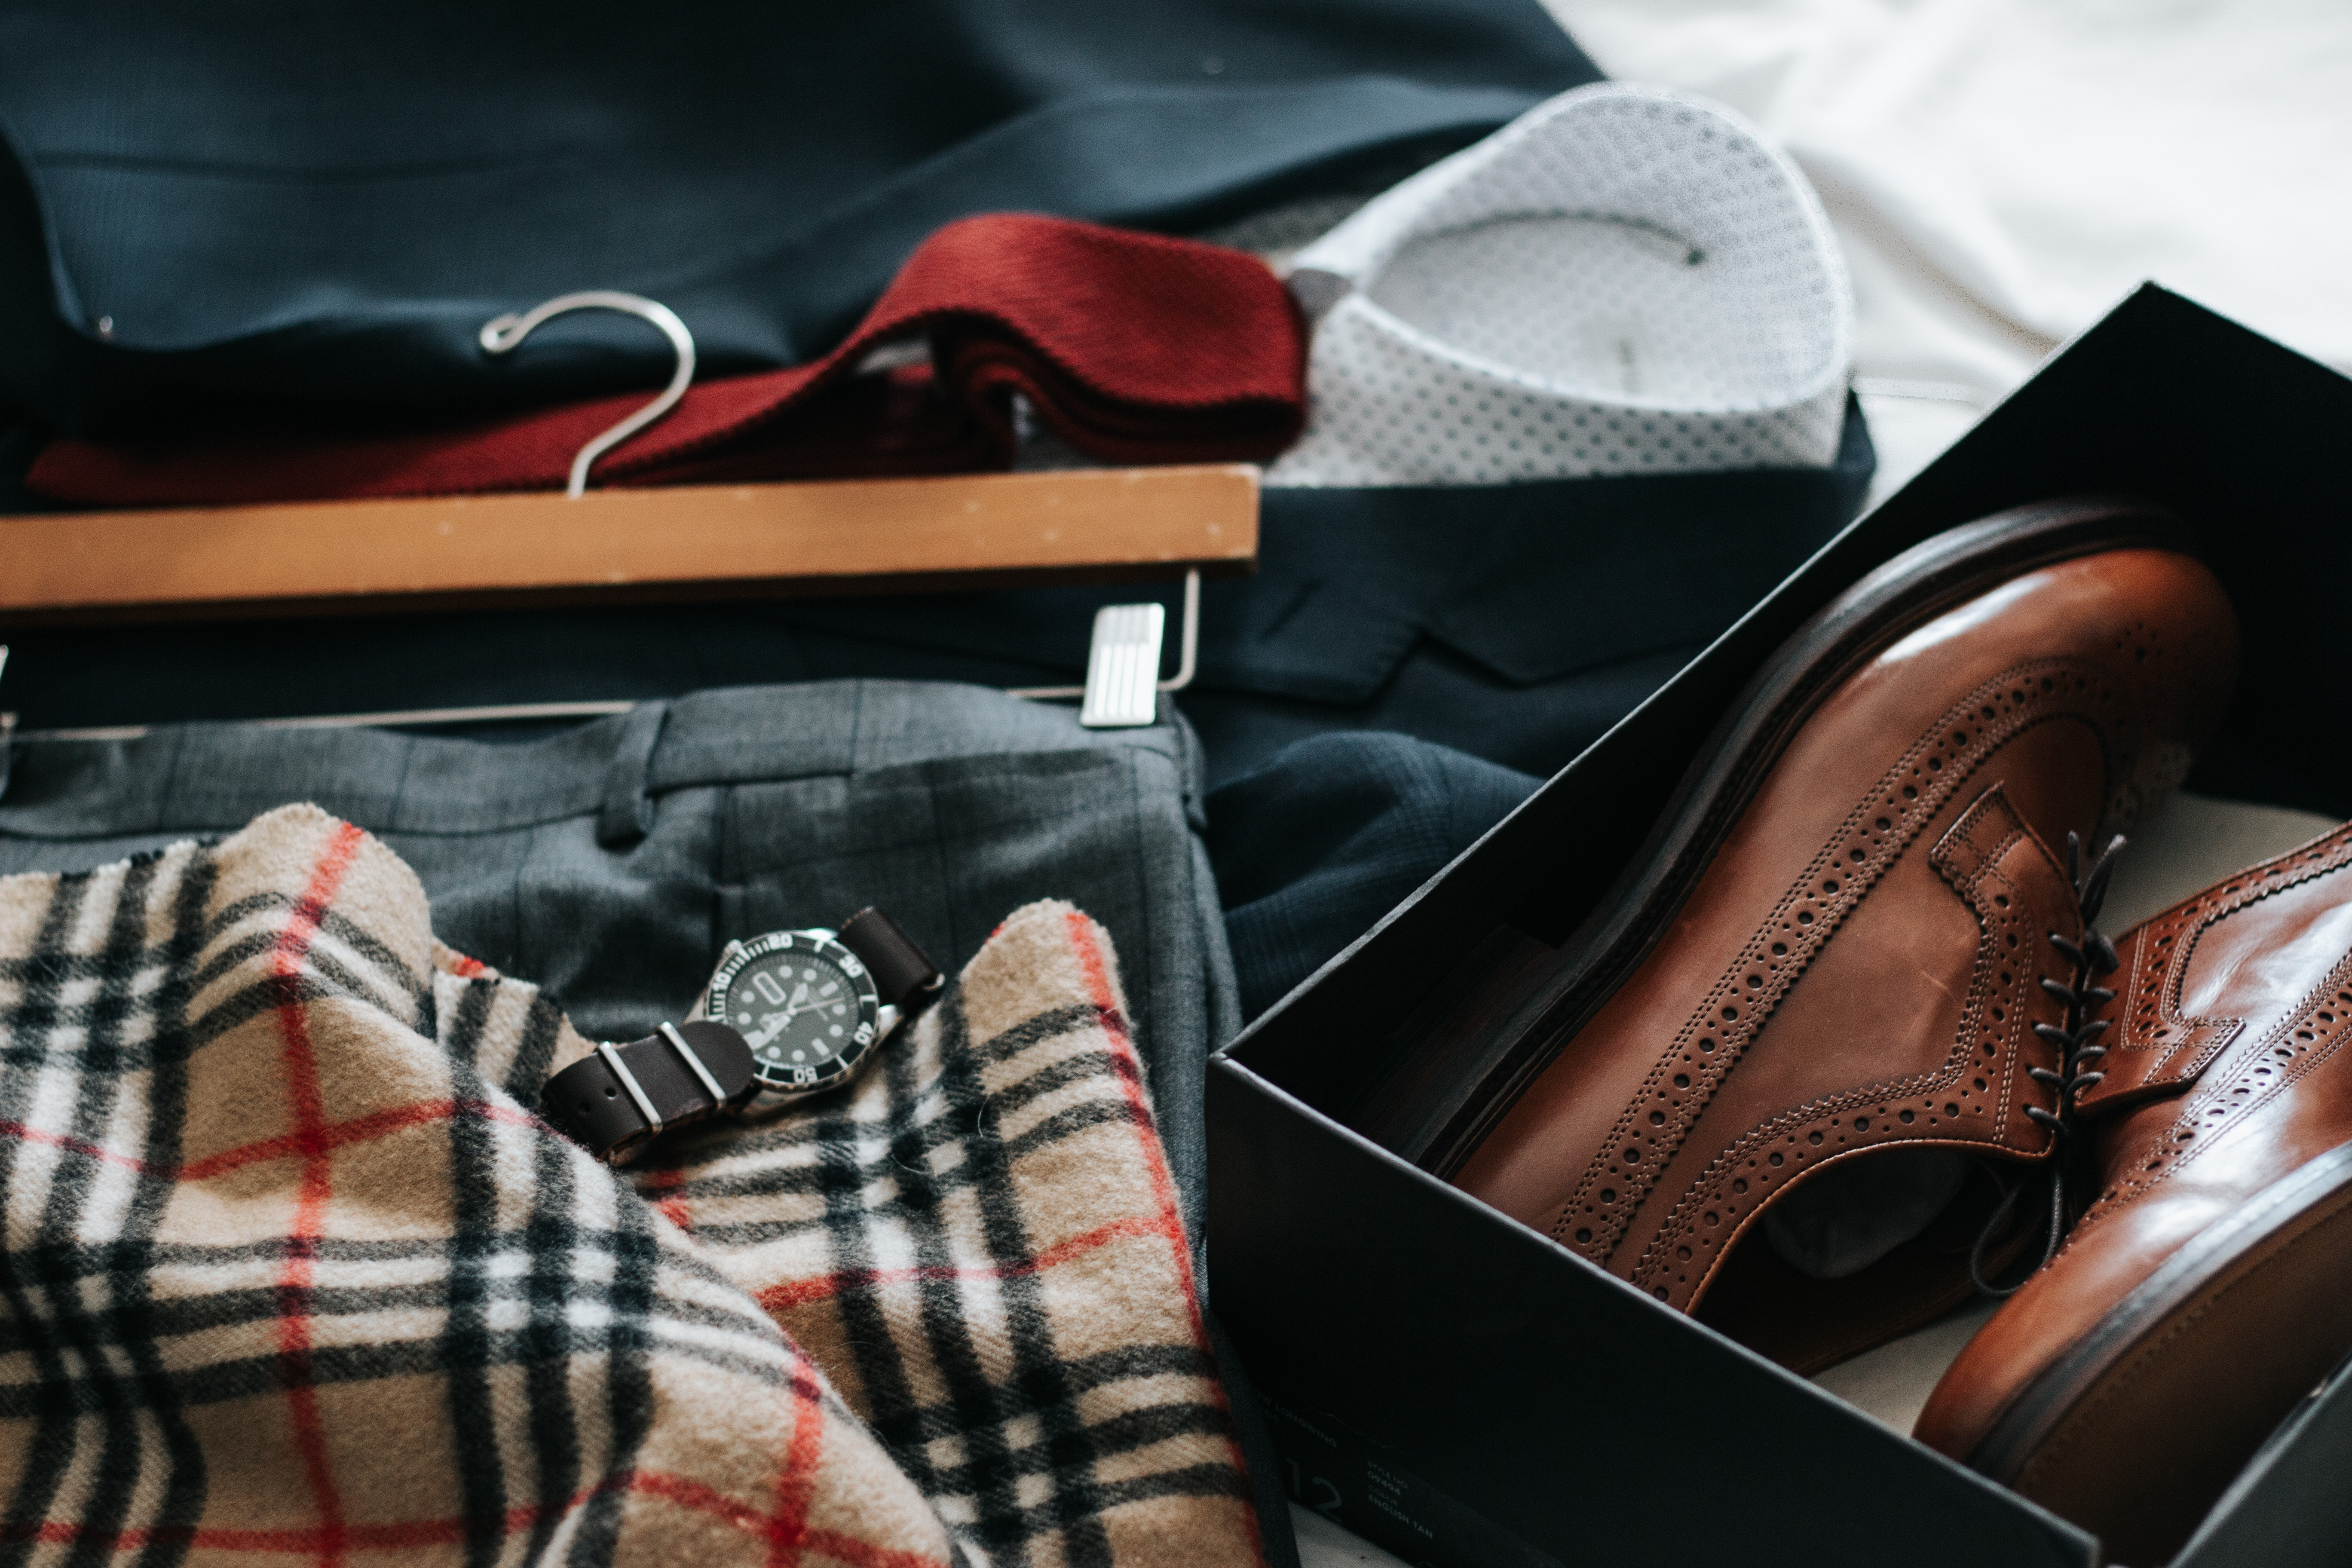 A pair of leather shoes in a box next to a suit jacket and a watch